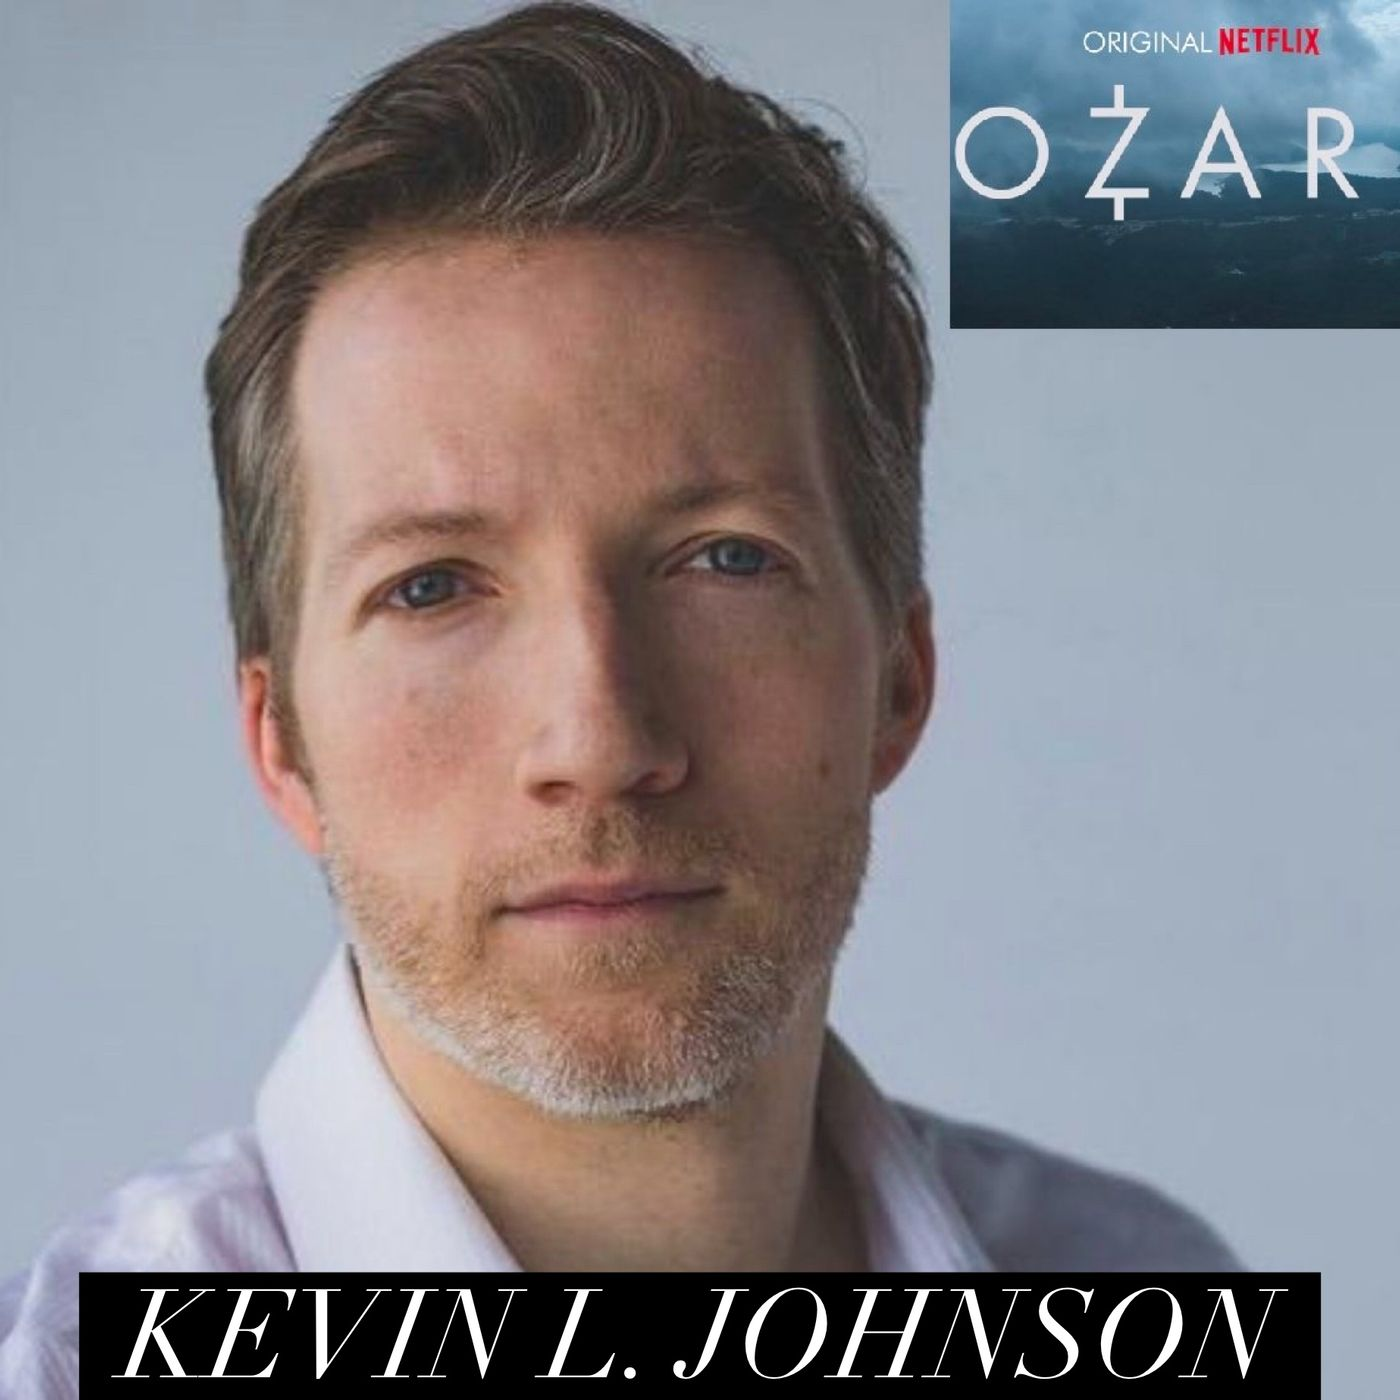 99. Kevin L Johnson from Netflix hit Series Ozark